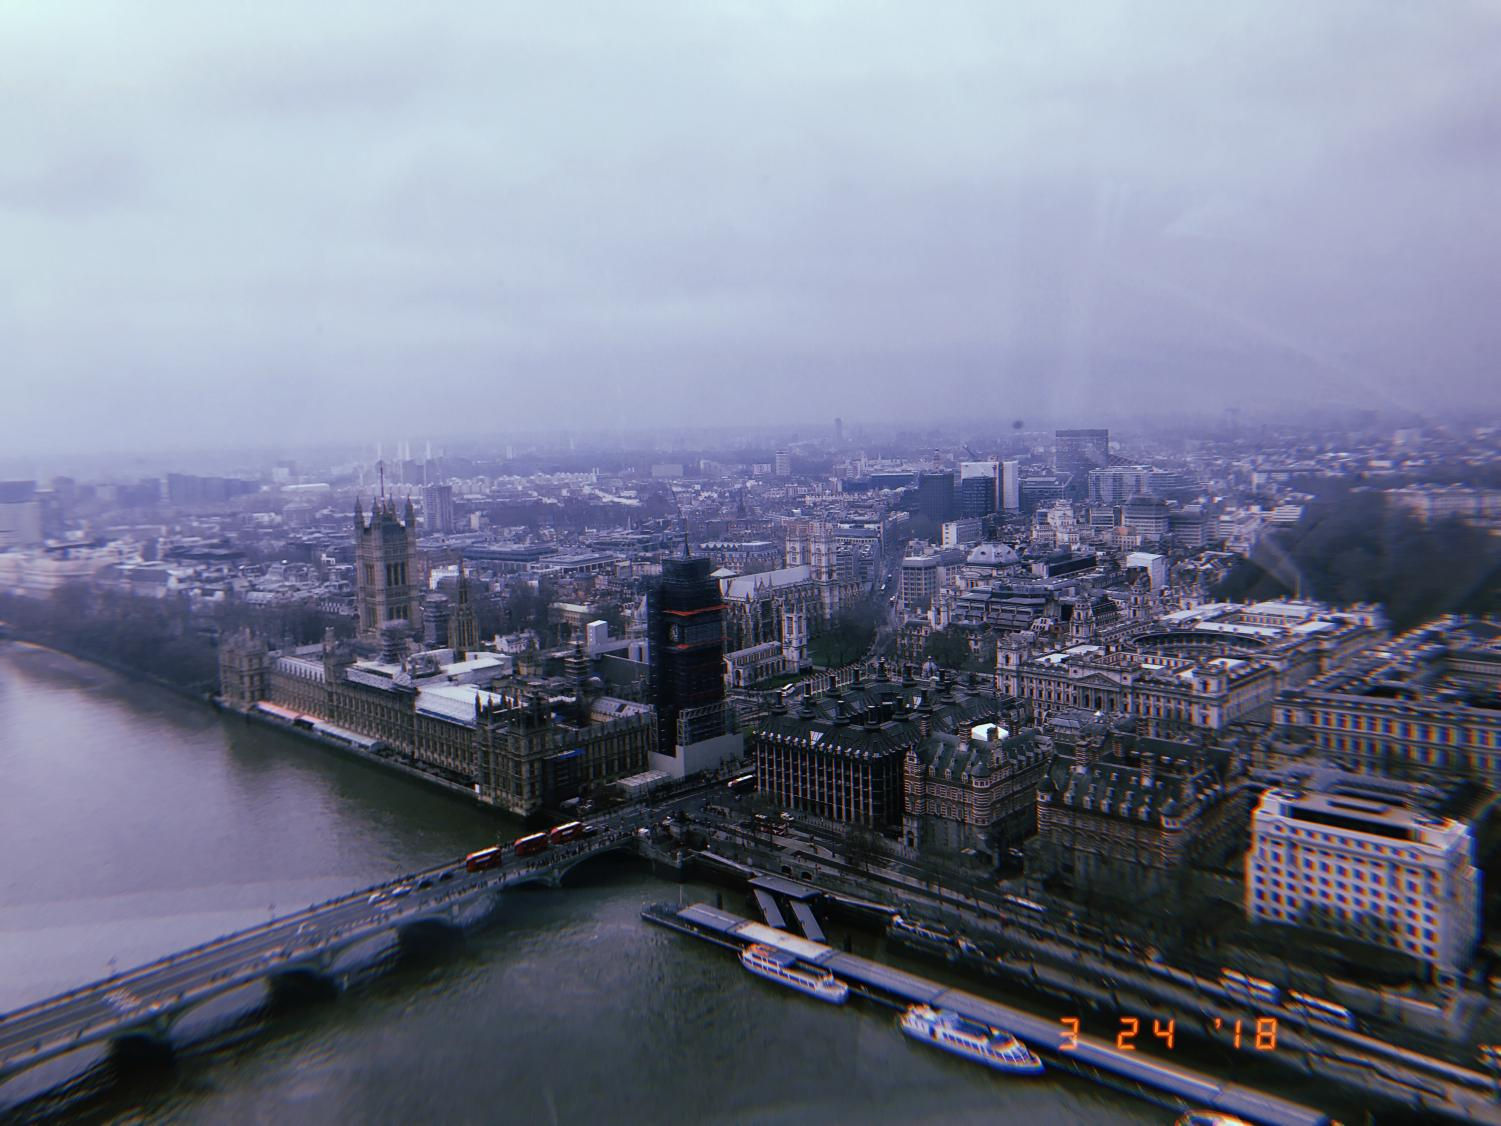 When the London Eye debuted in 2000, it became known as the world's largest ferris wheel. Located along the south bank of the Thames River, the view from the top of the London Eye offers an unimpeded view the city.